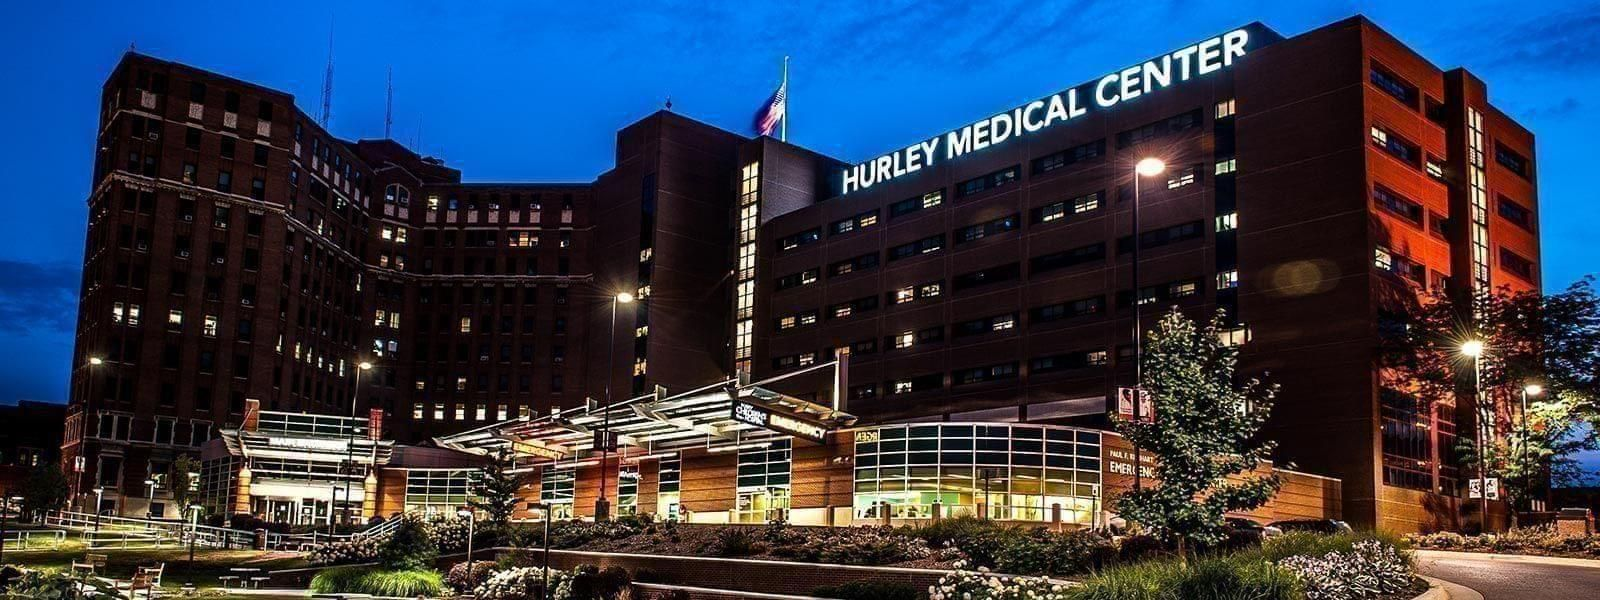 Hurley Medical Center | Accreditations and Affiliations